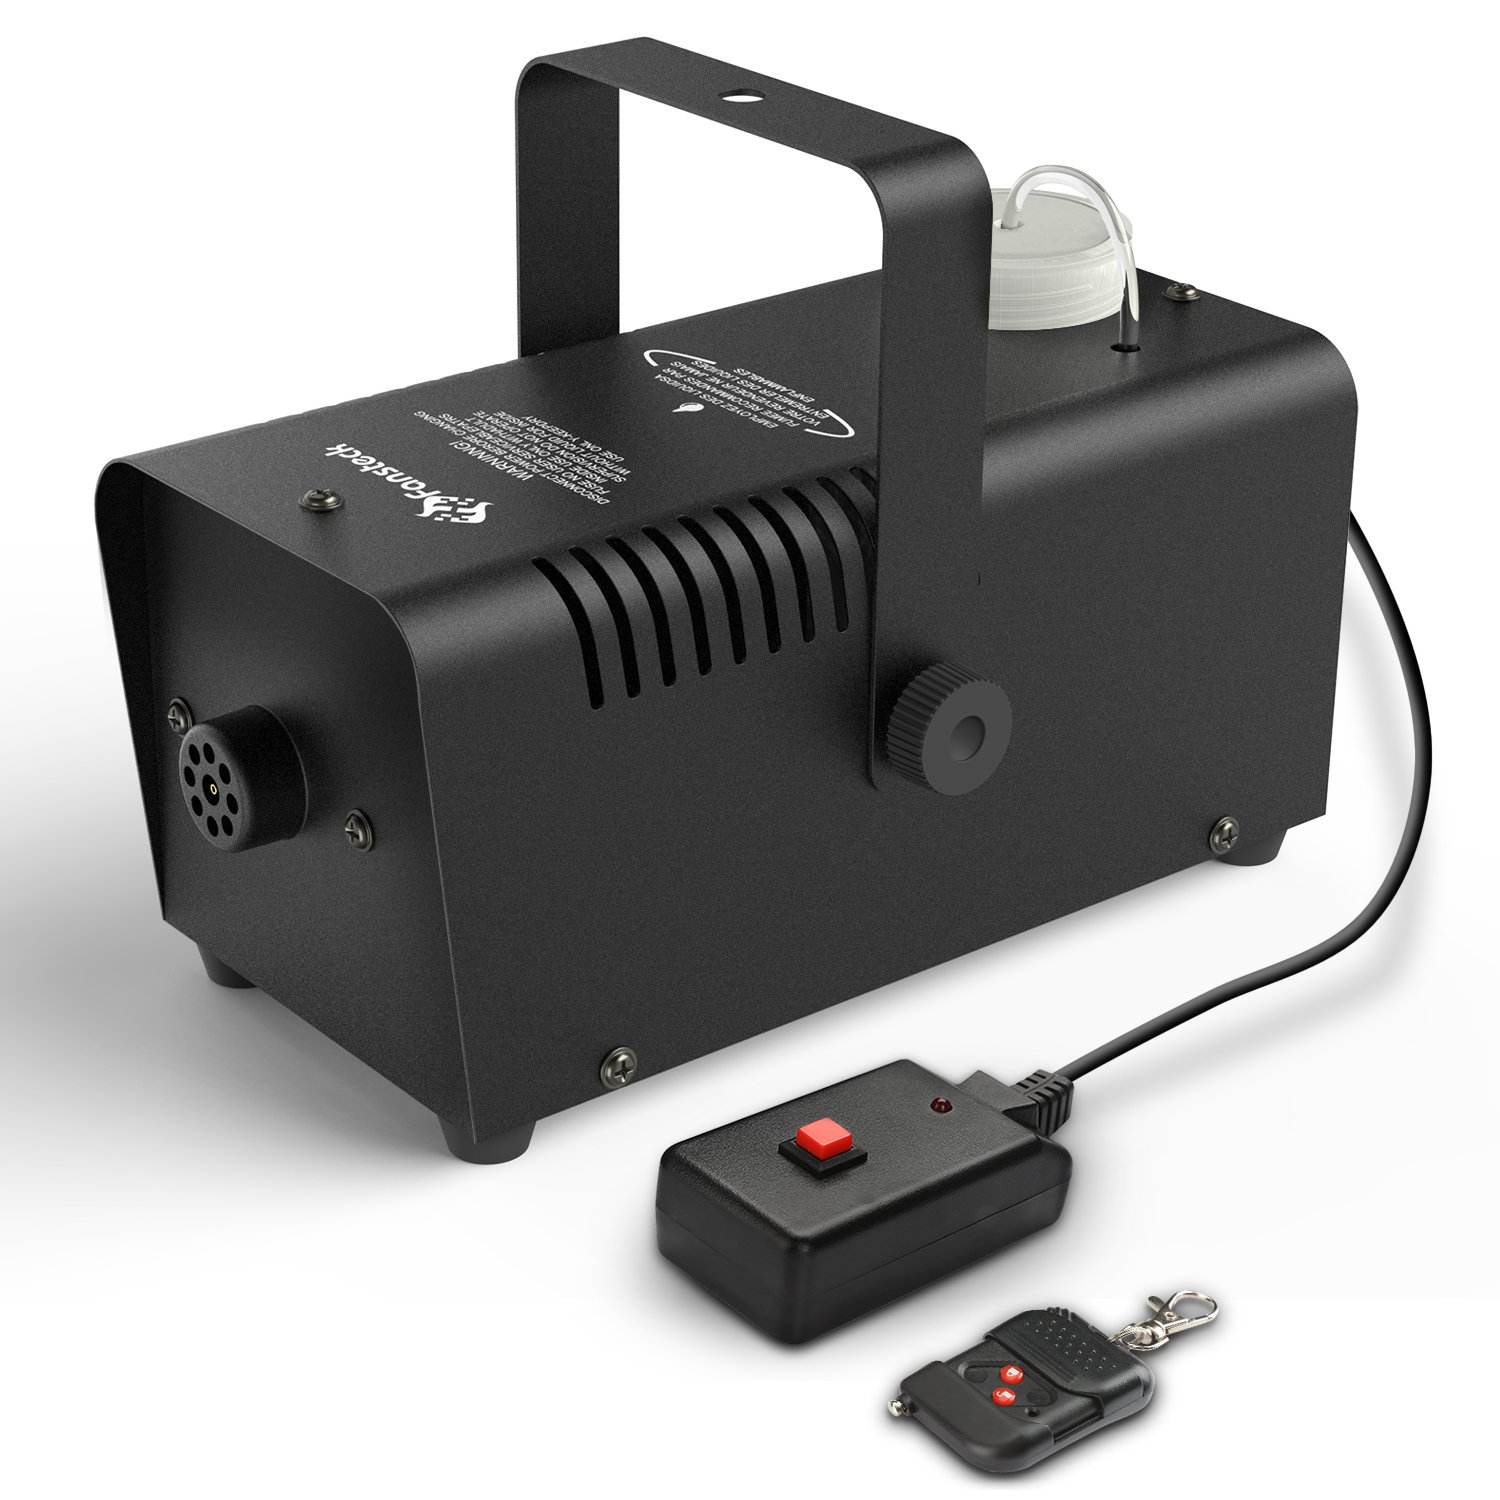 Halloween Fog Machine - Fansteck Professional Wireless Remote Control Portable Smoke Machine for Holidays Parties Weddings - Quick Generation of Huge Fog 2000 CFM, with Fuse Protection - Metal Black by Fansteck